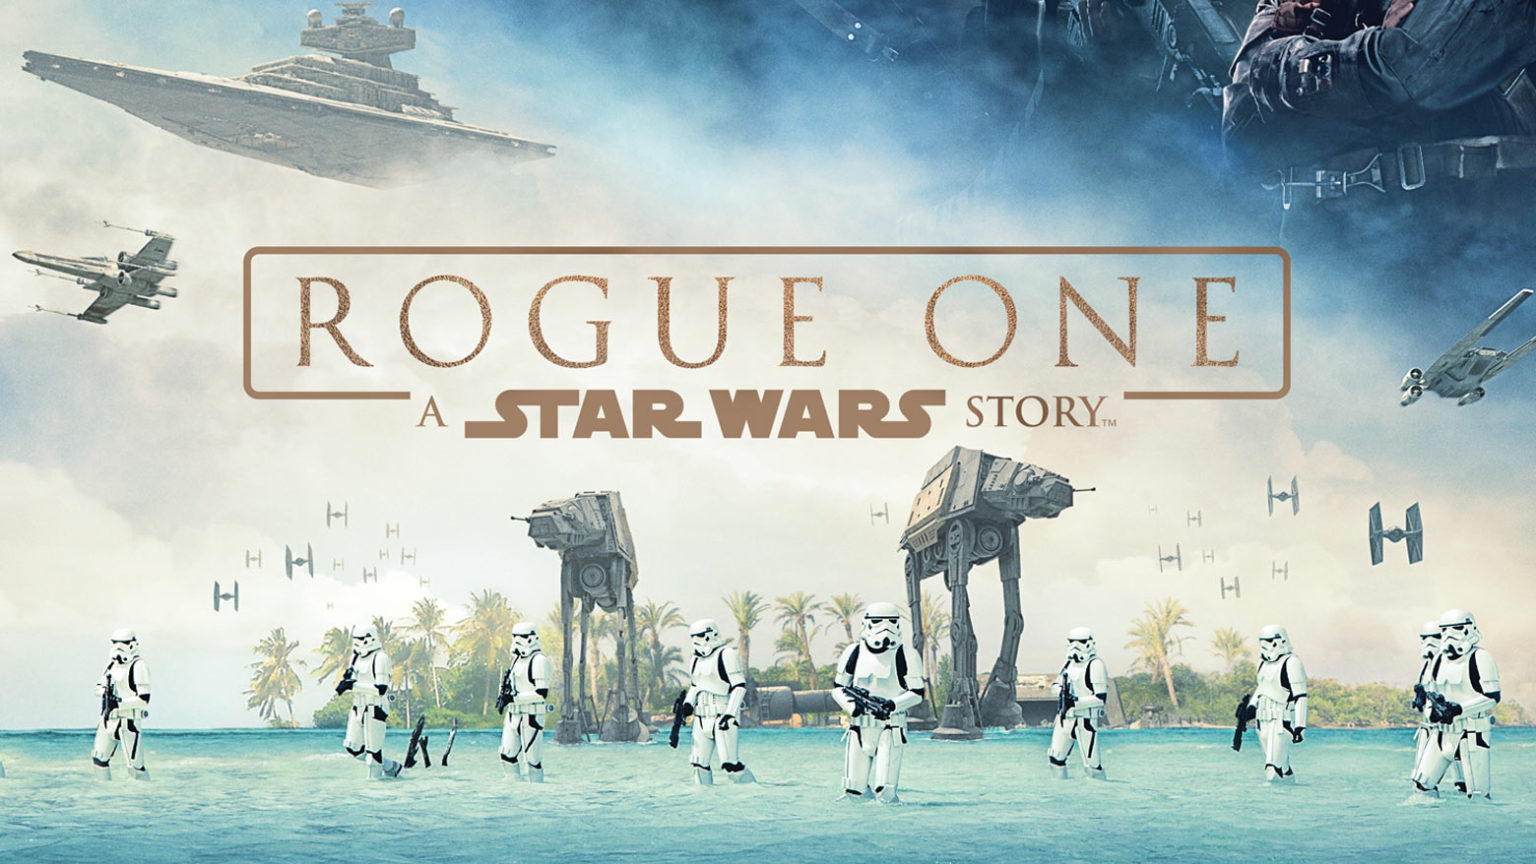 rogue one movie spoilers